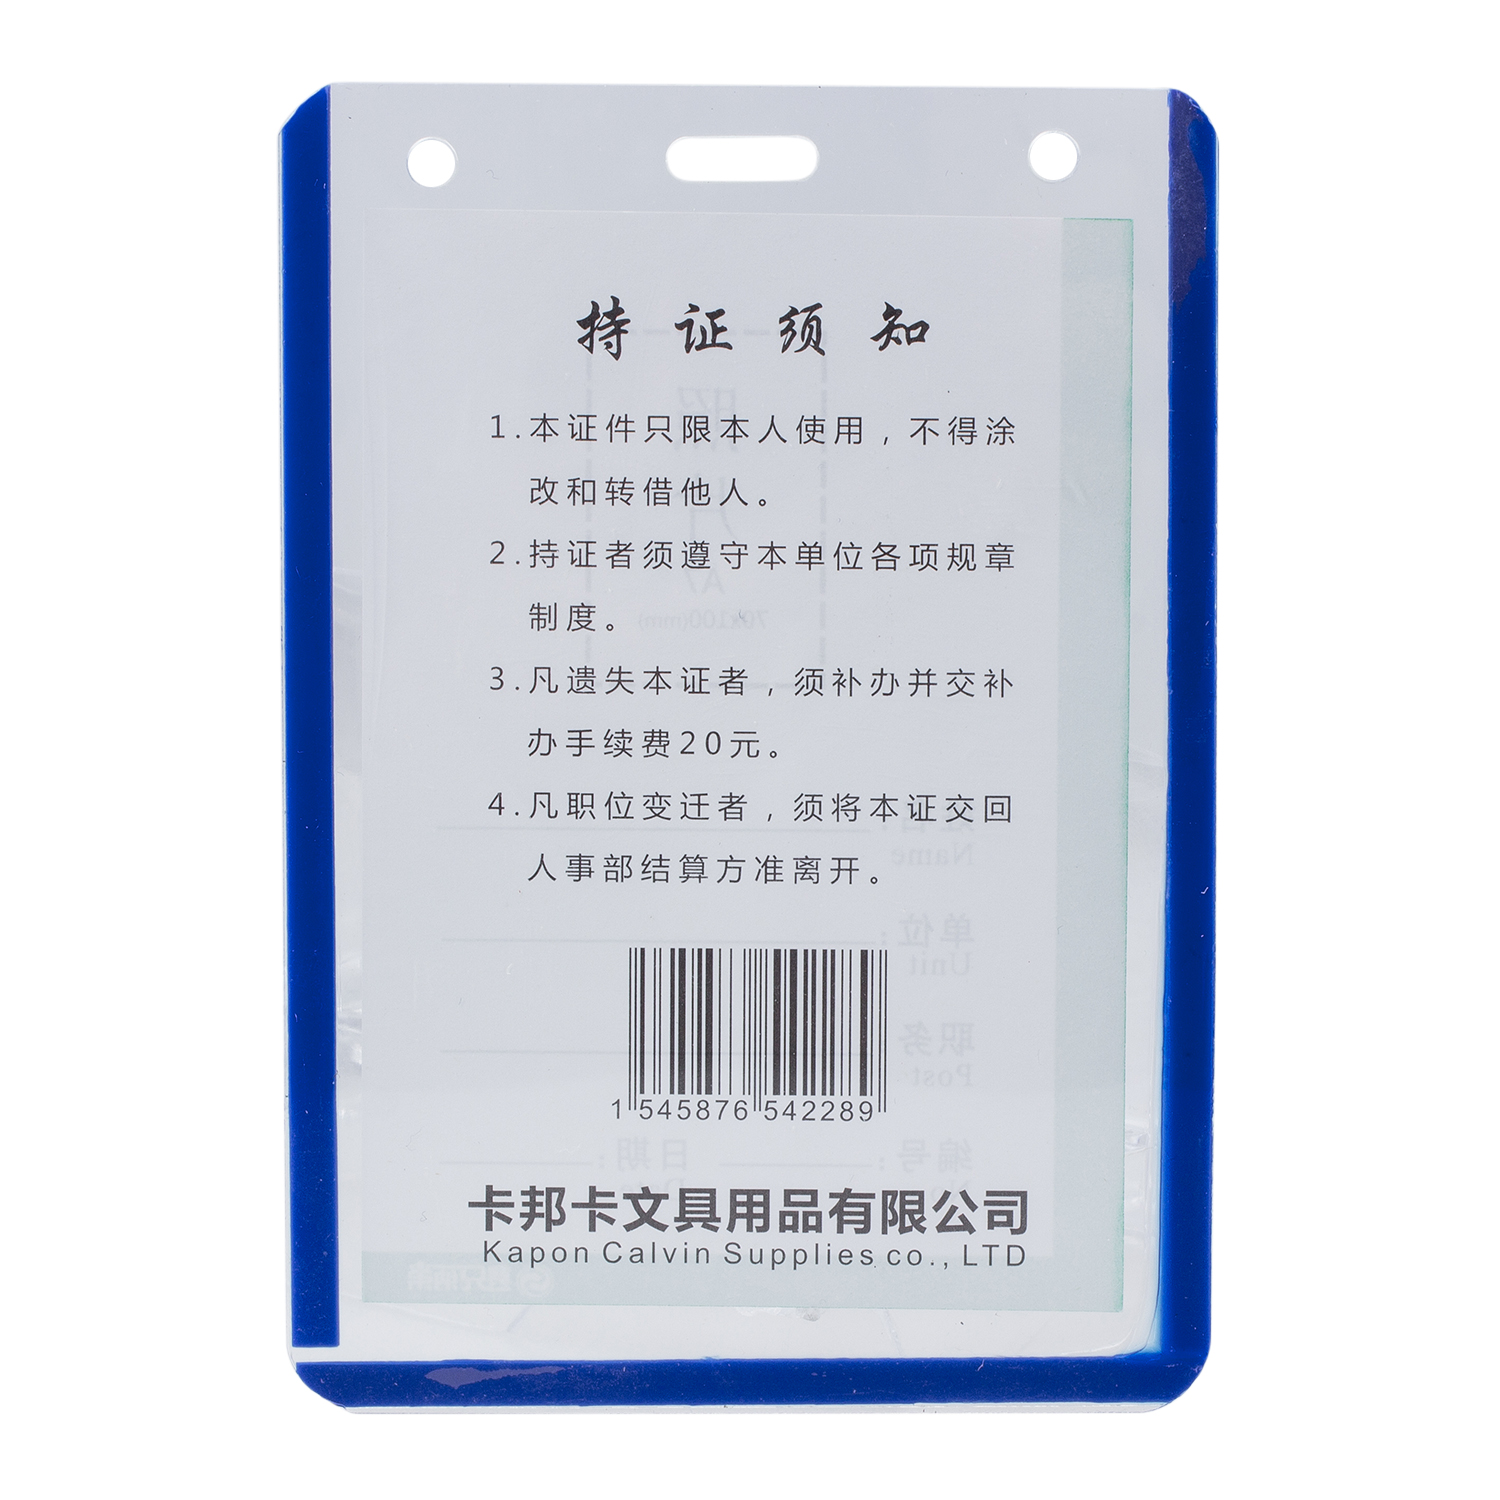 Affordable Plastic Vertical Business ID Badge Card Holder, 10-Piece, Blue Clear